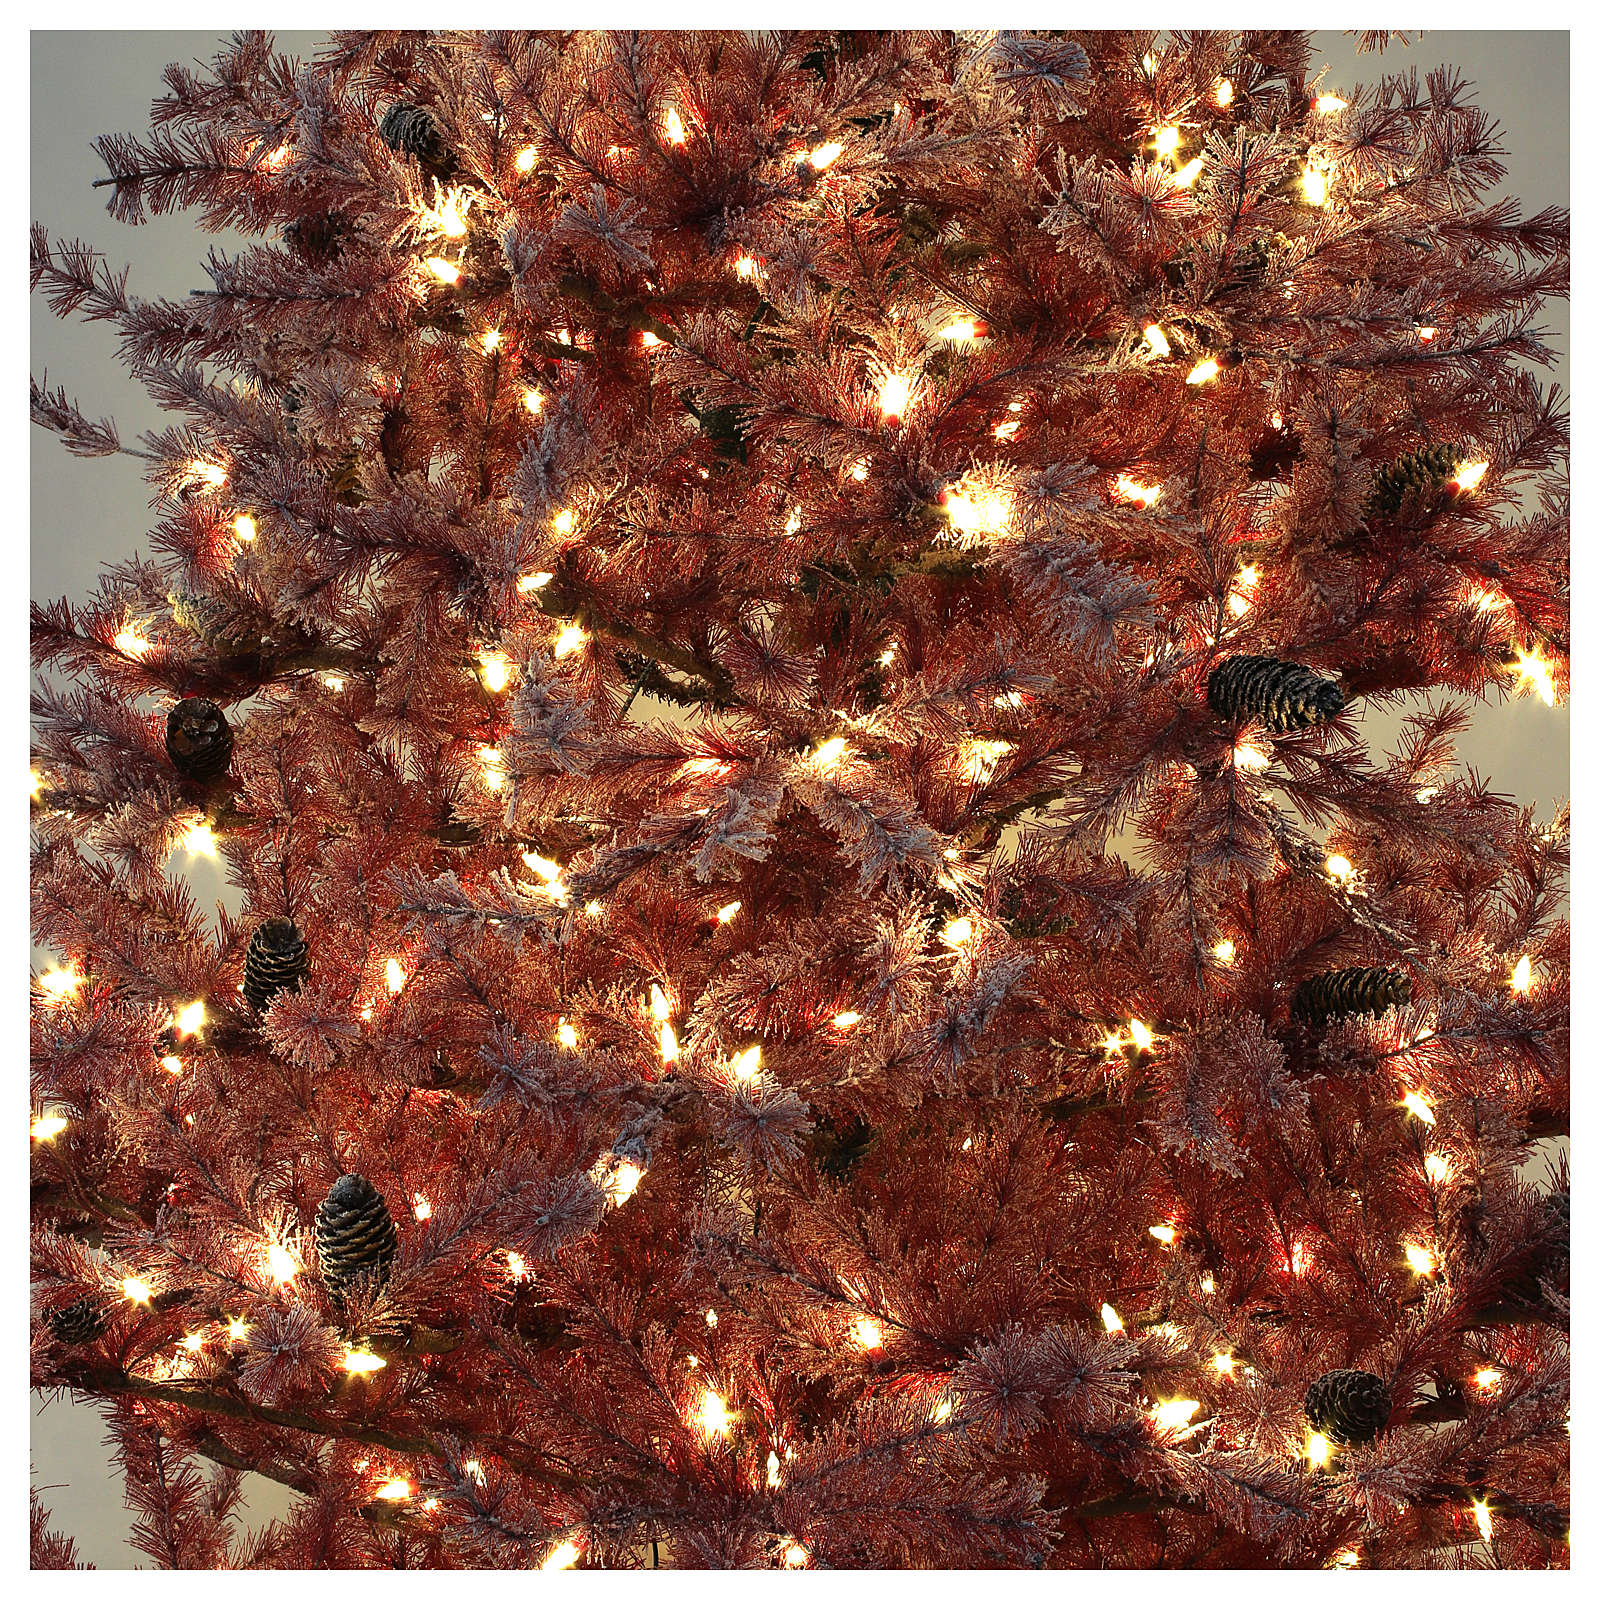 Frosted Christmas tree 230 cm with pine cones 400 lights external use 3